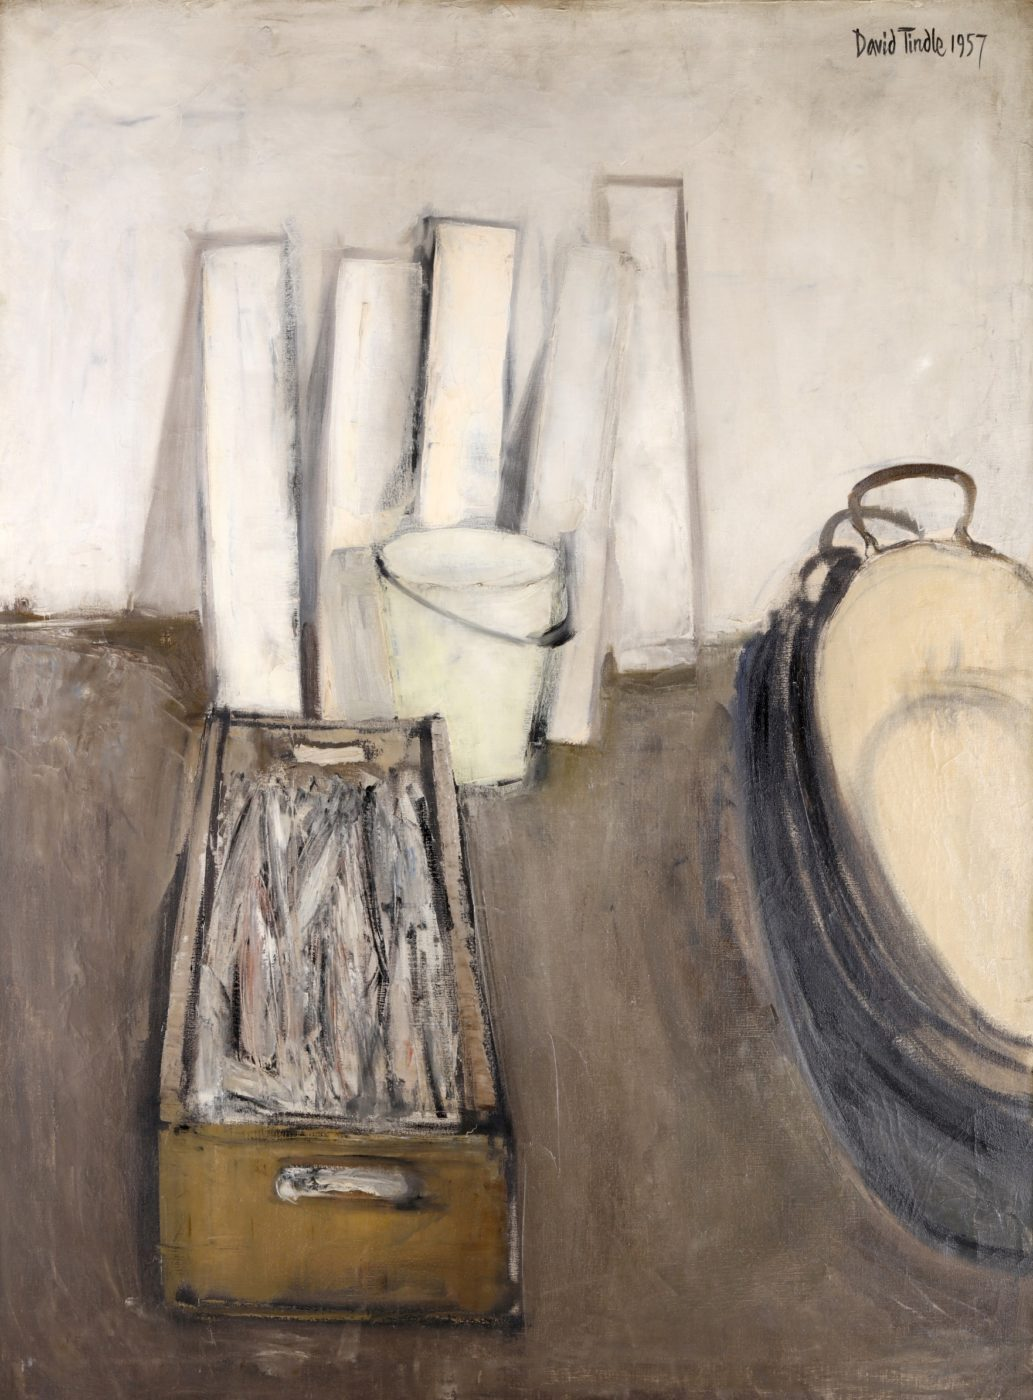 David Tindle (b. 1932), Still Life with Fish in a Box